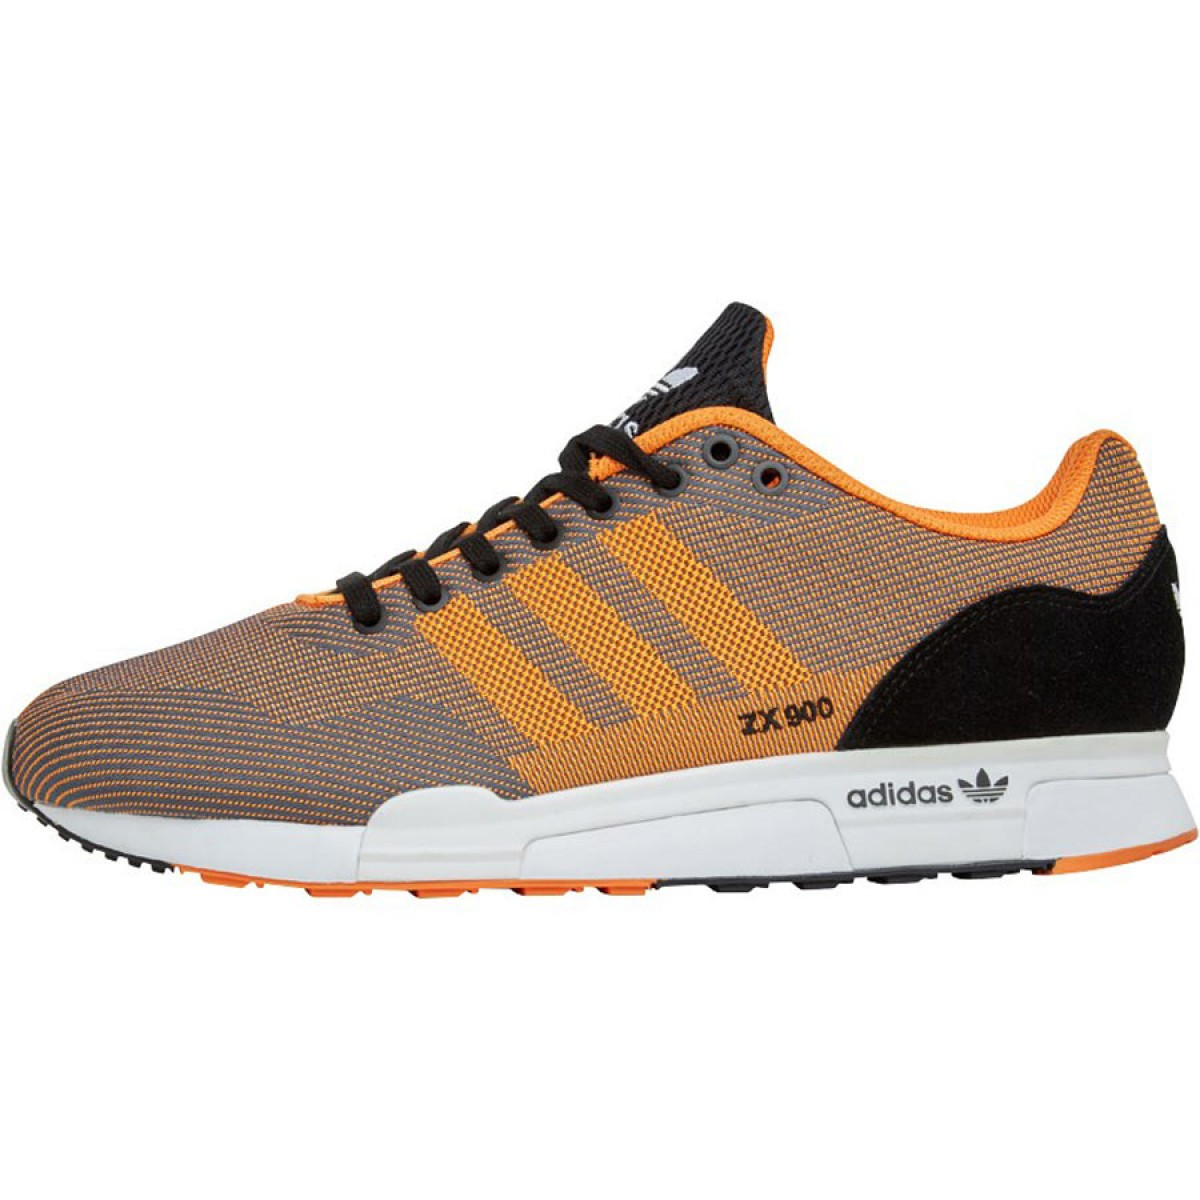 super popular b7925 60c15 amazon adidas zx 900 kids silver 3e8d7 2aceb  where to buy adidas zx 900  latest mens a19b7 7638b